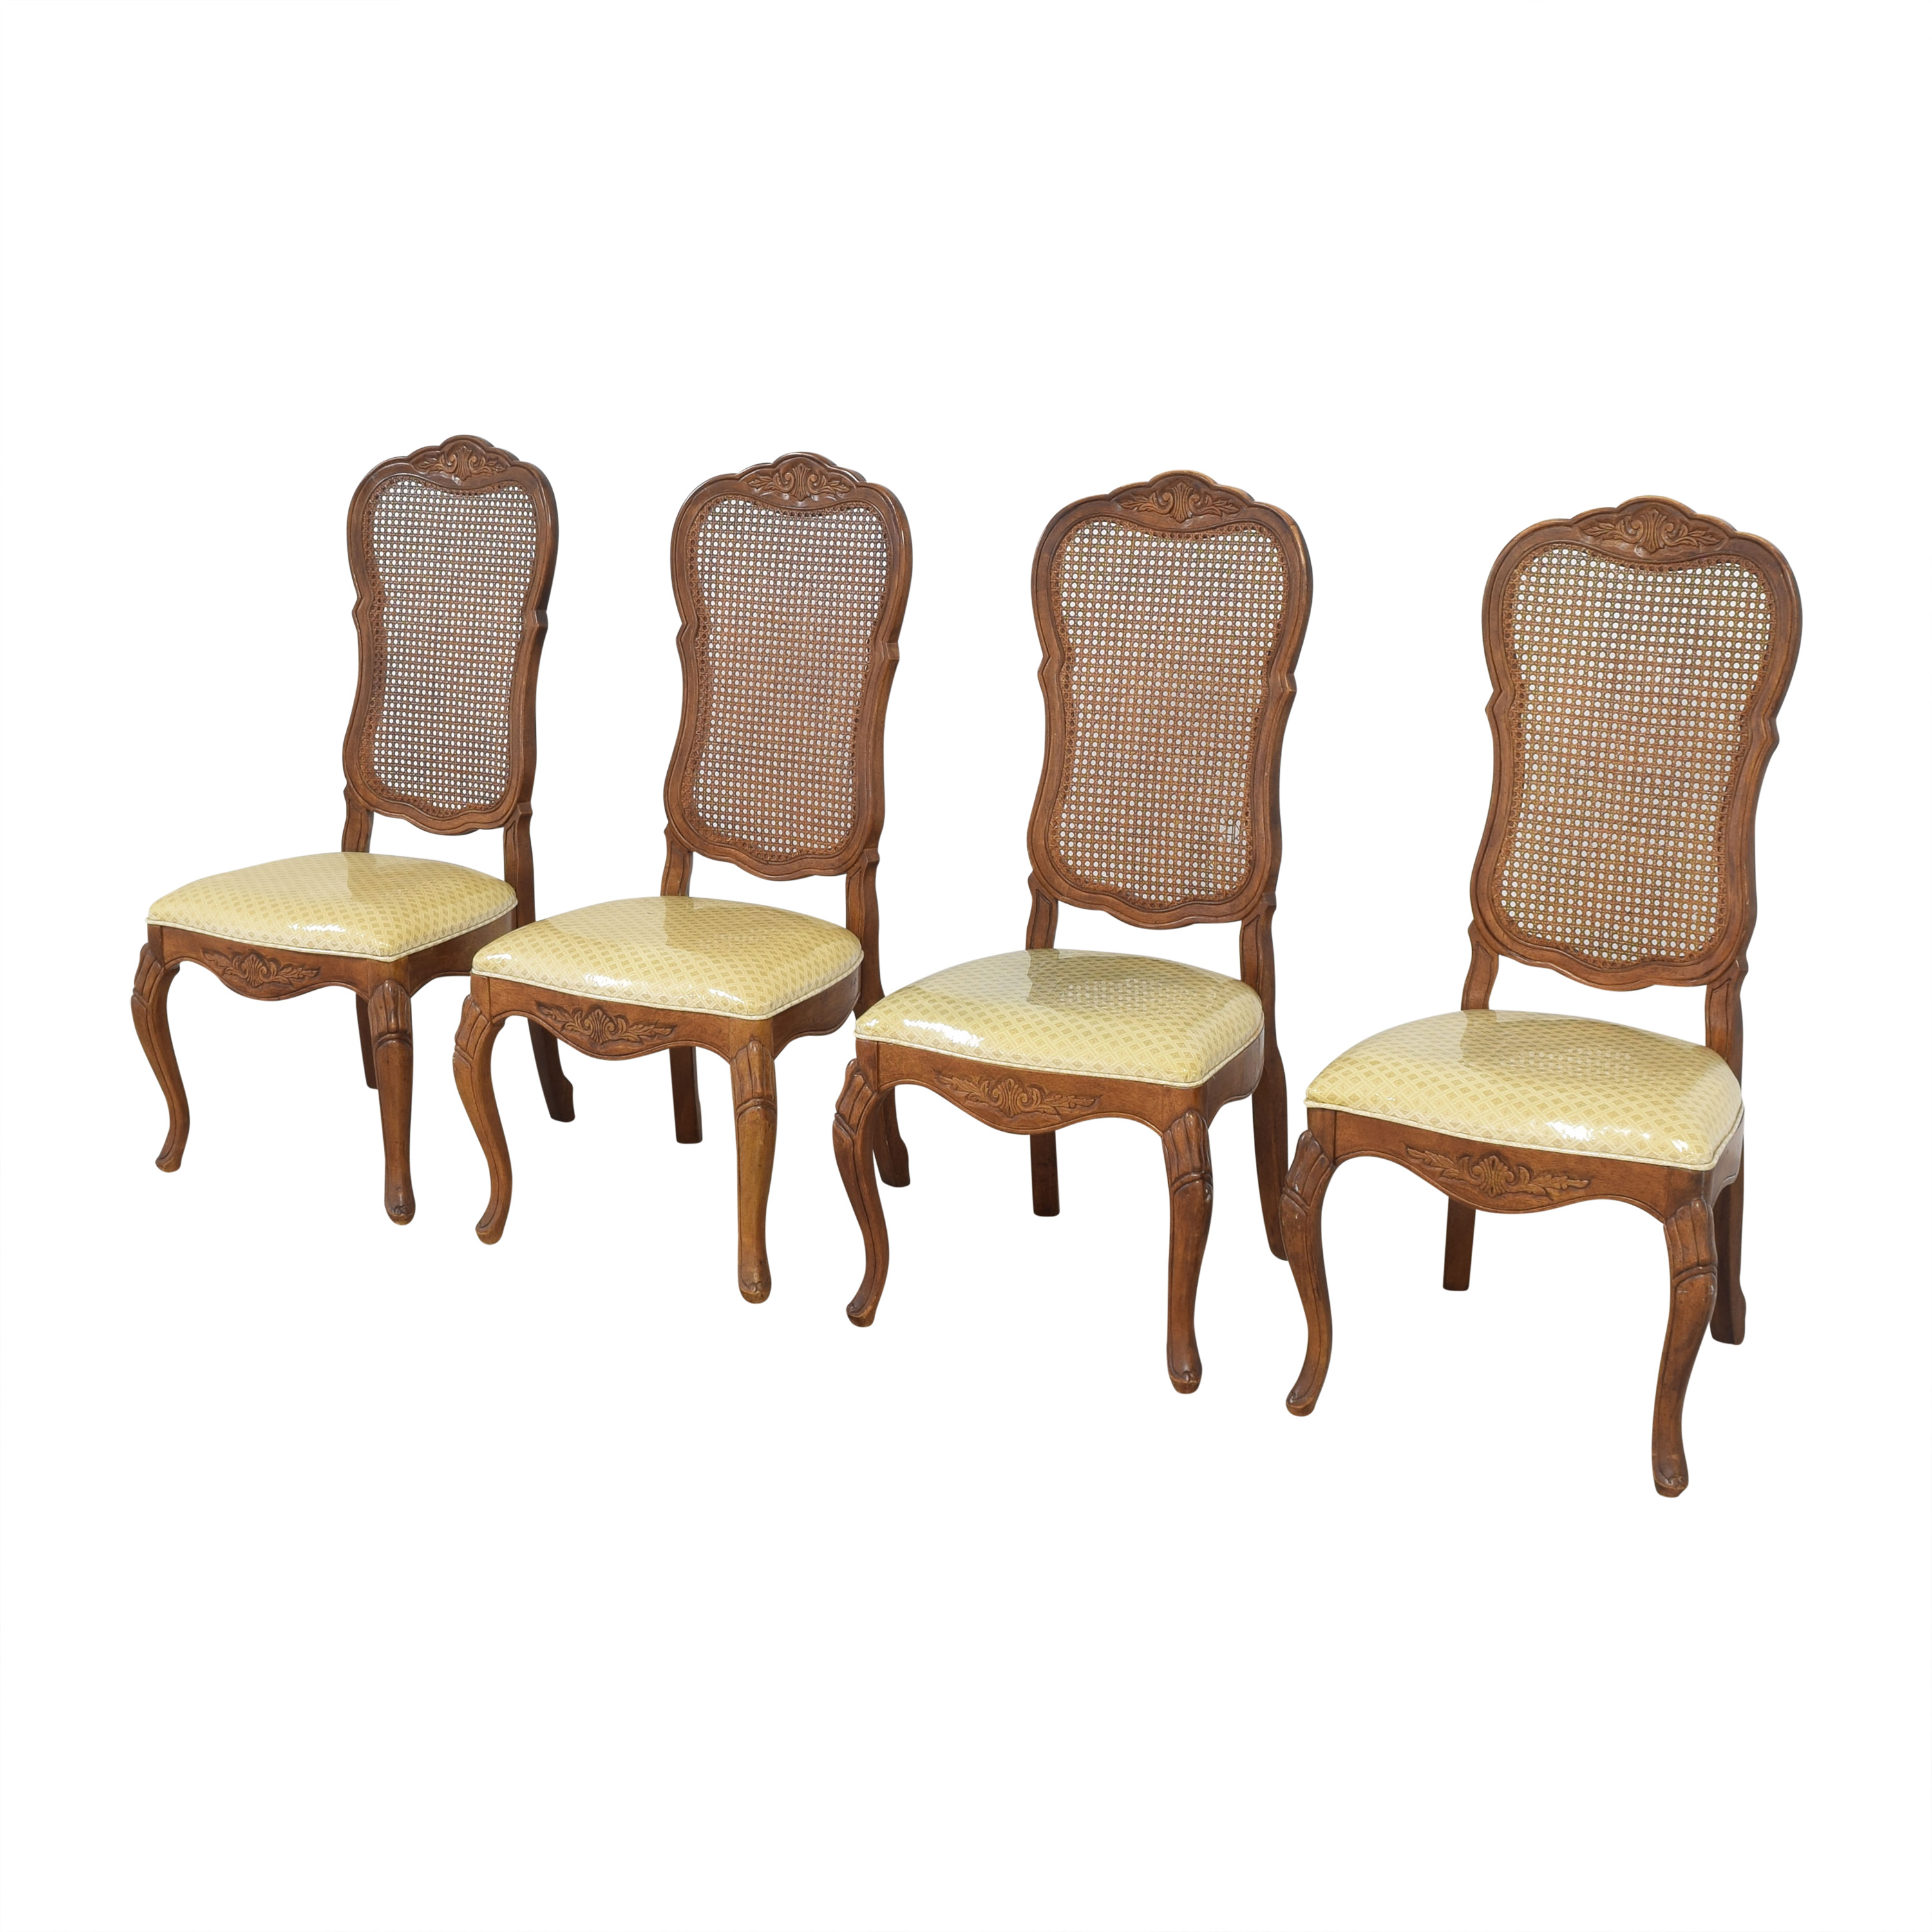 Bernhardt Bernhardt Cane Back Dining Chairs Dining Chairs